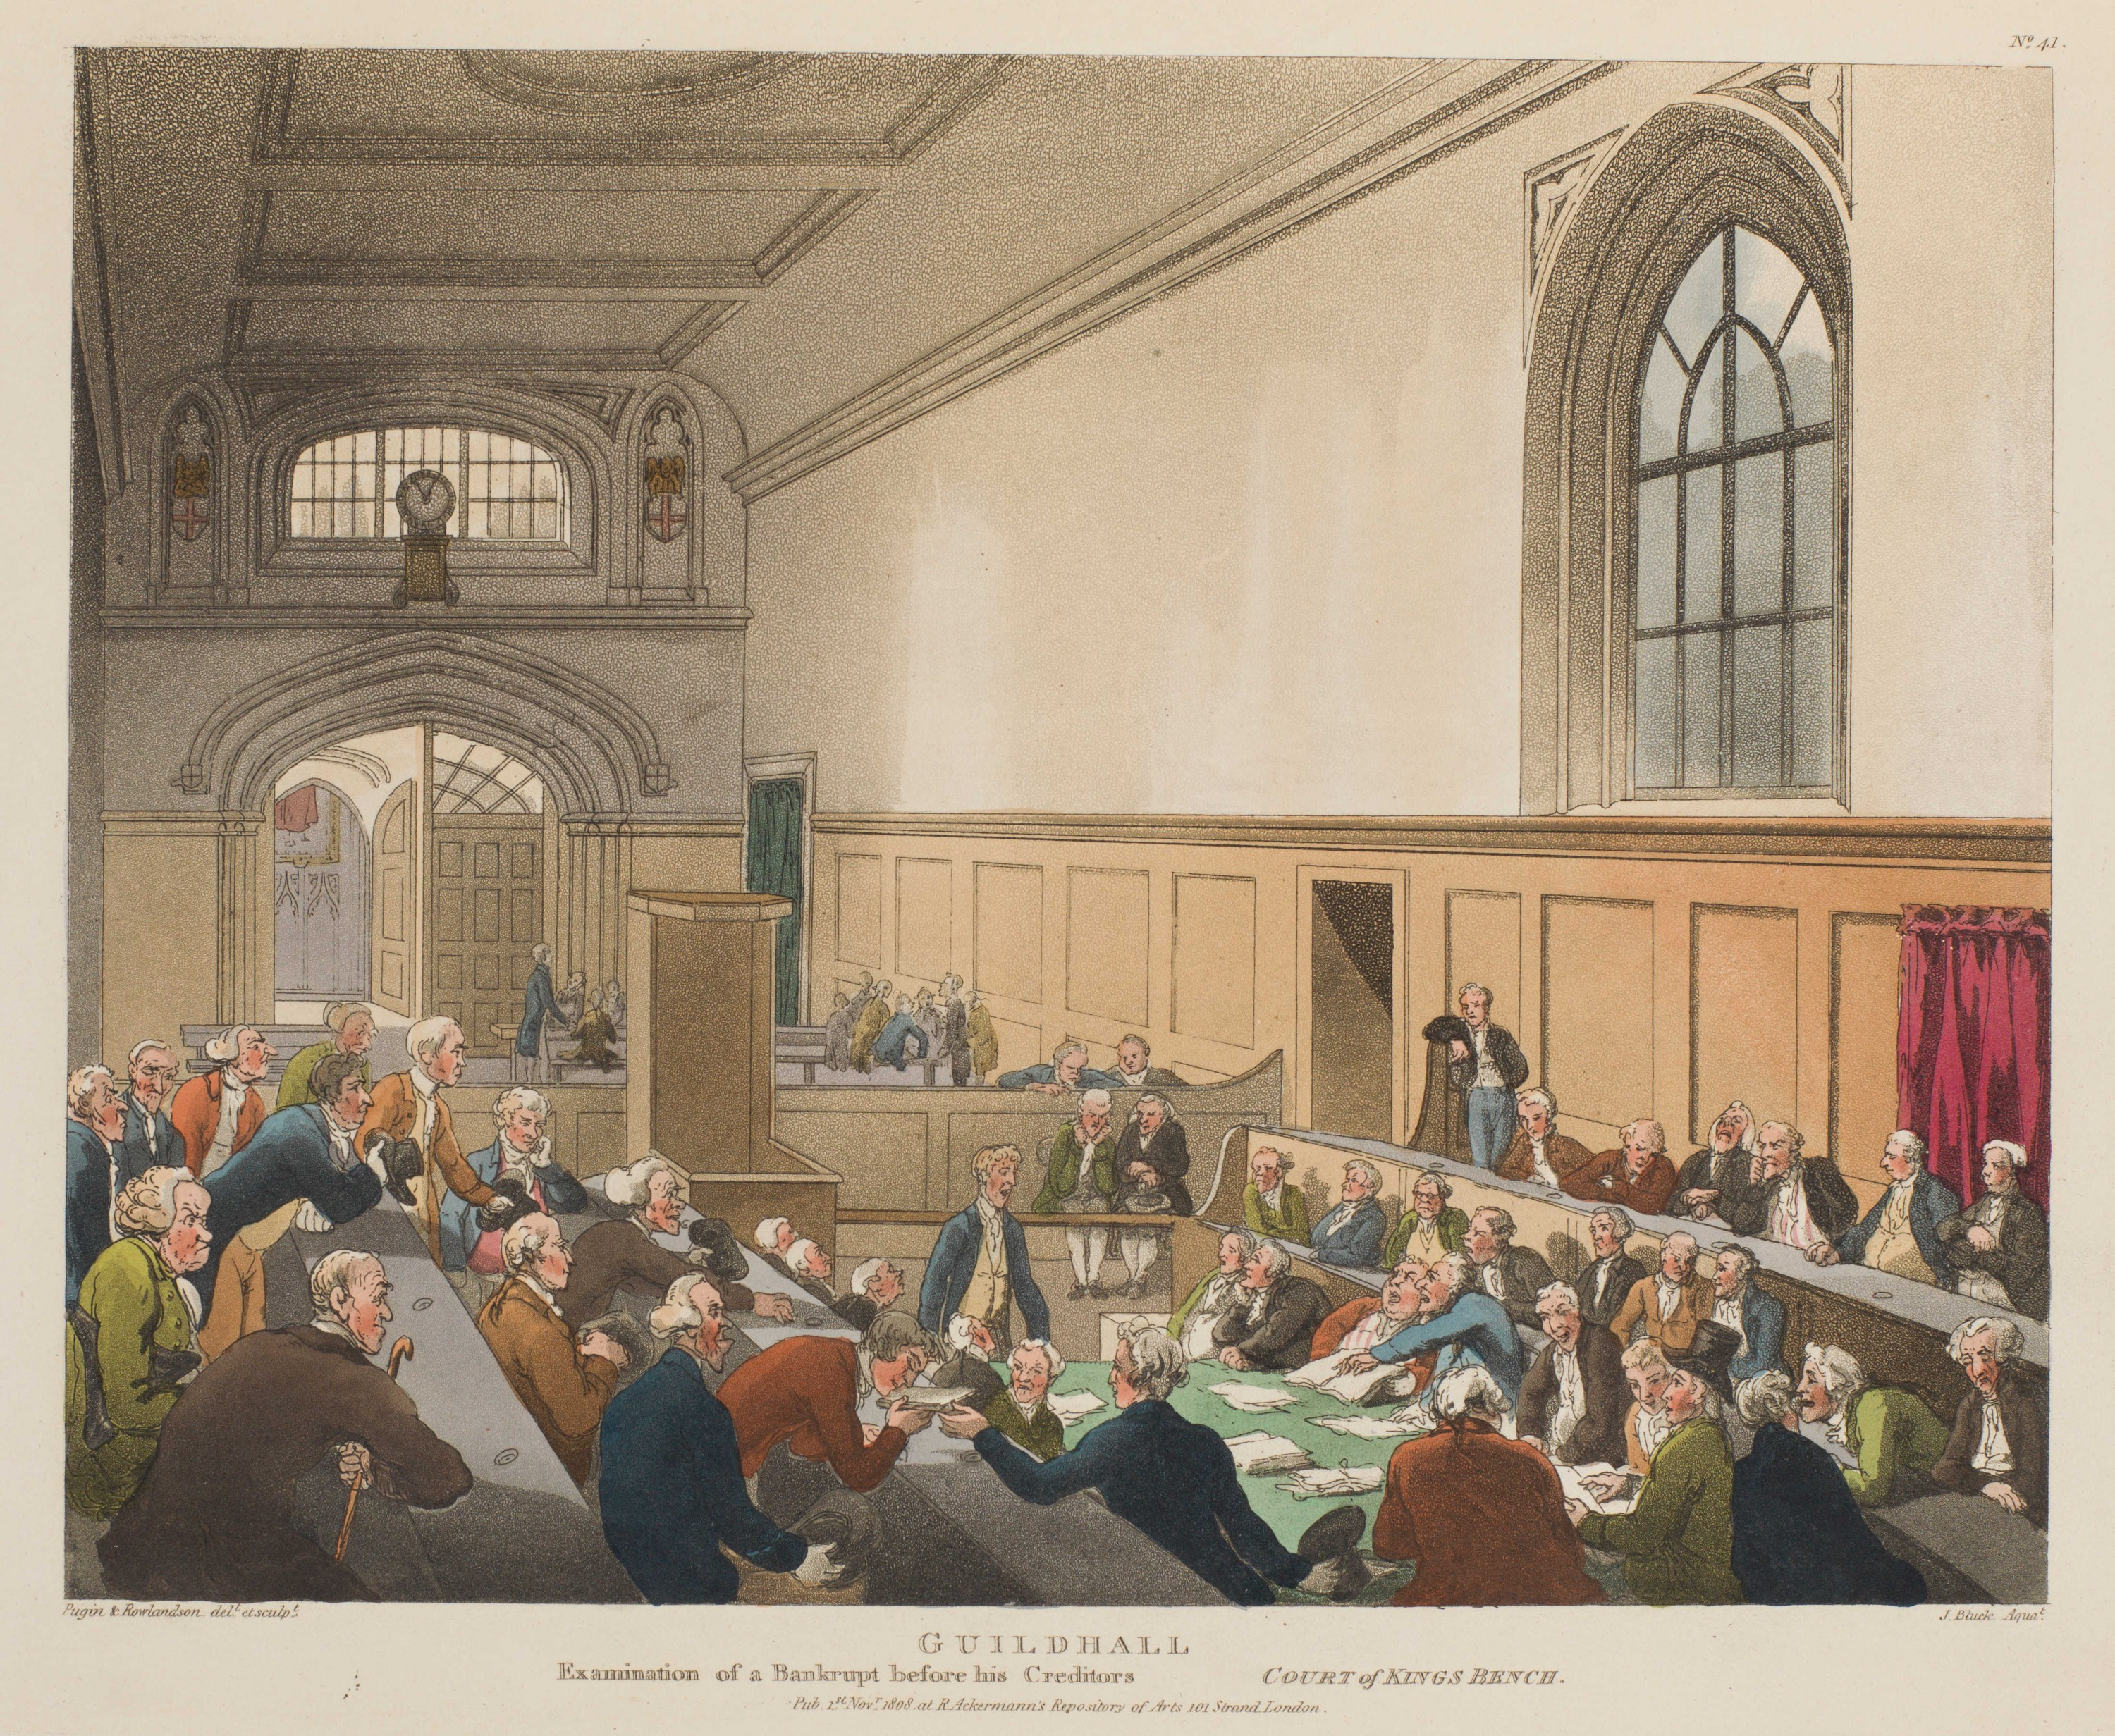 041 - Guildhall, Examination of a Bankrupt before his Creditors